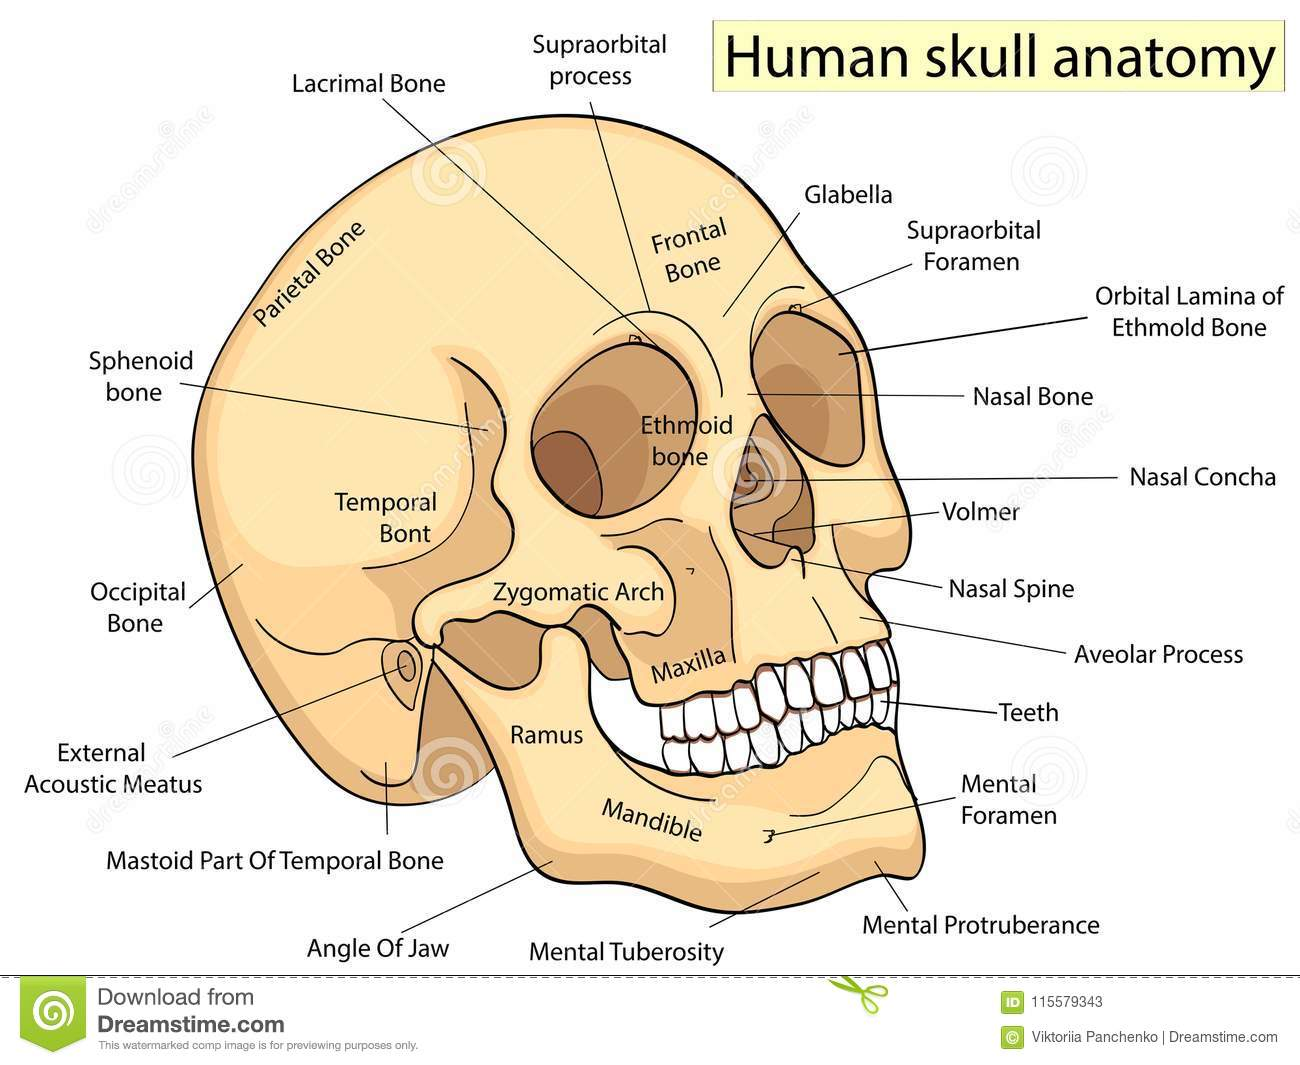 hight resolution of medical education chart of biology for human skull diagram vector illustration front aspect table on white background for basic medical education